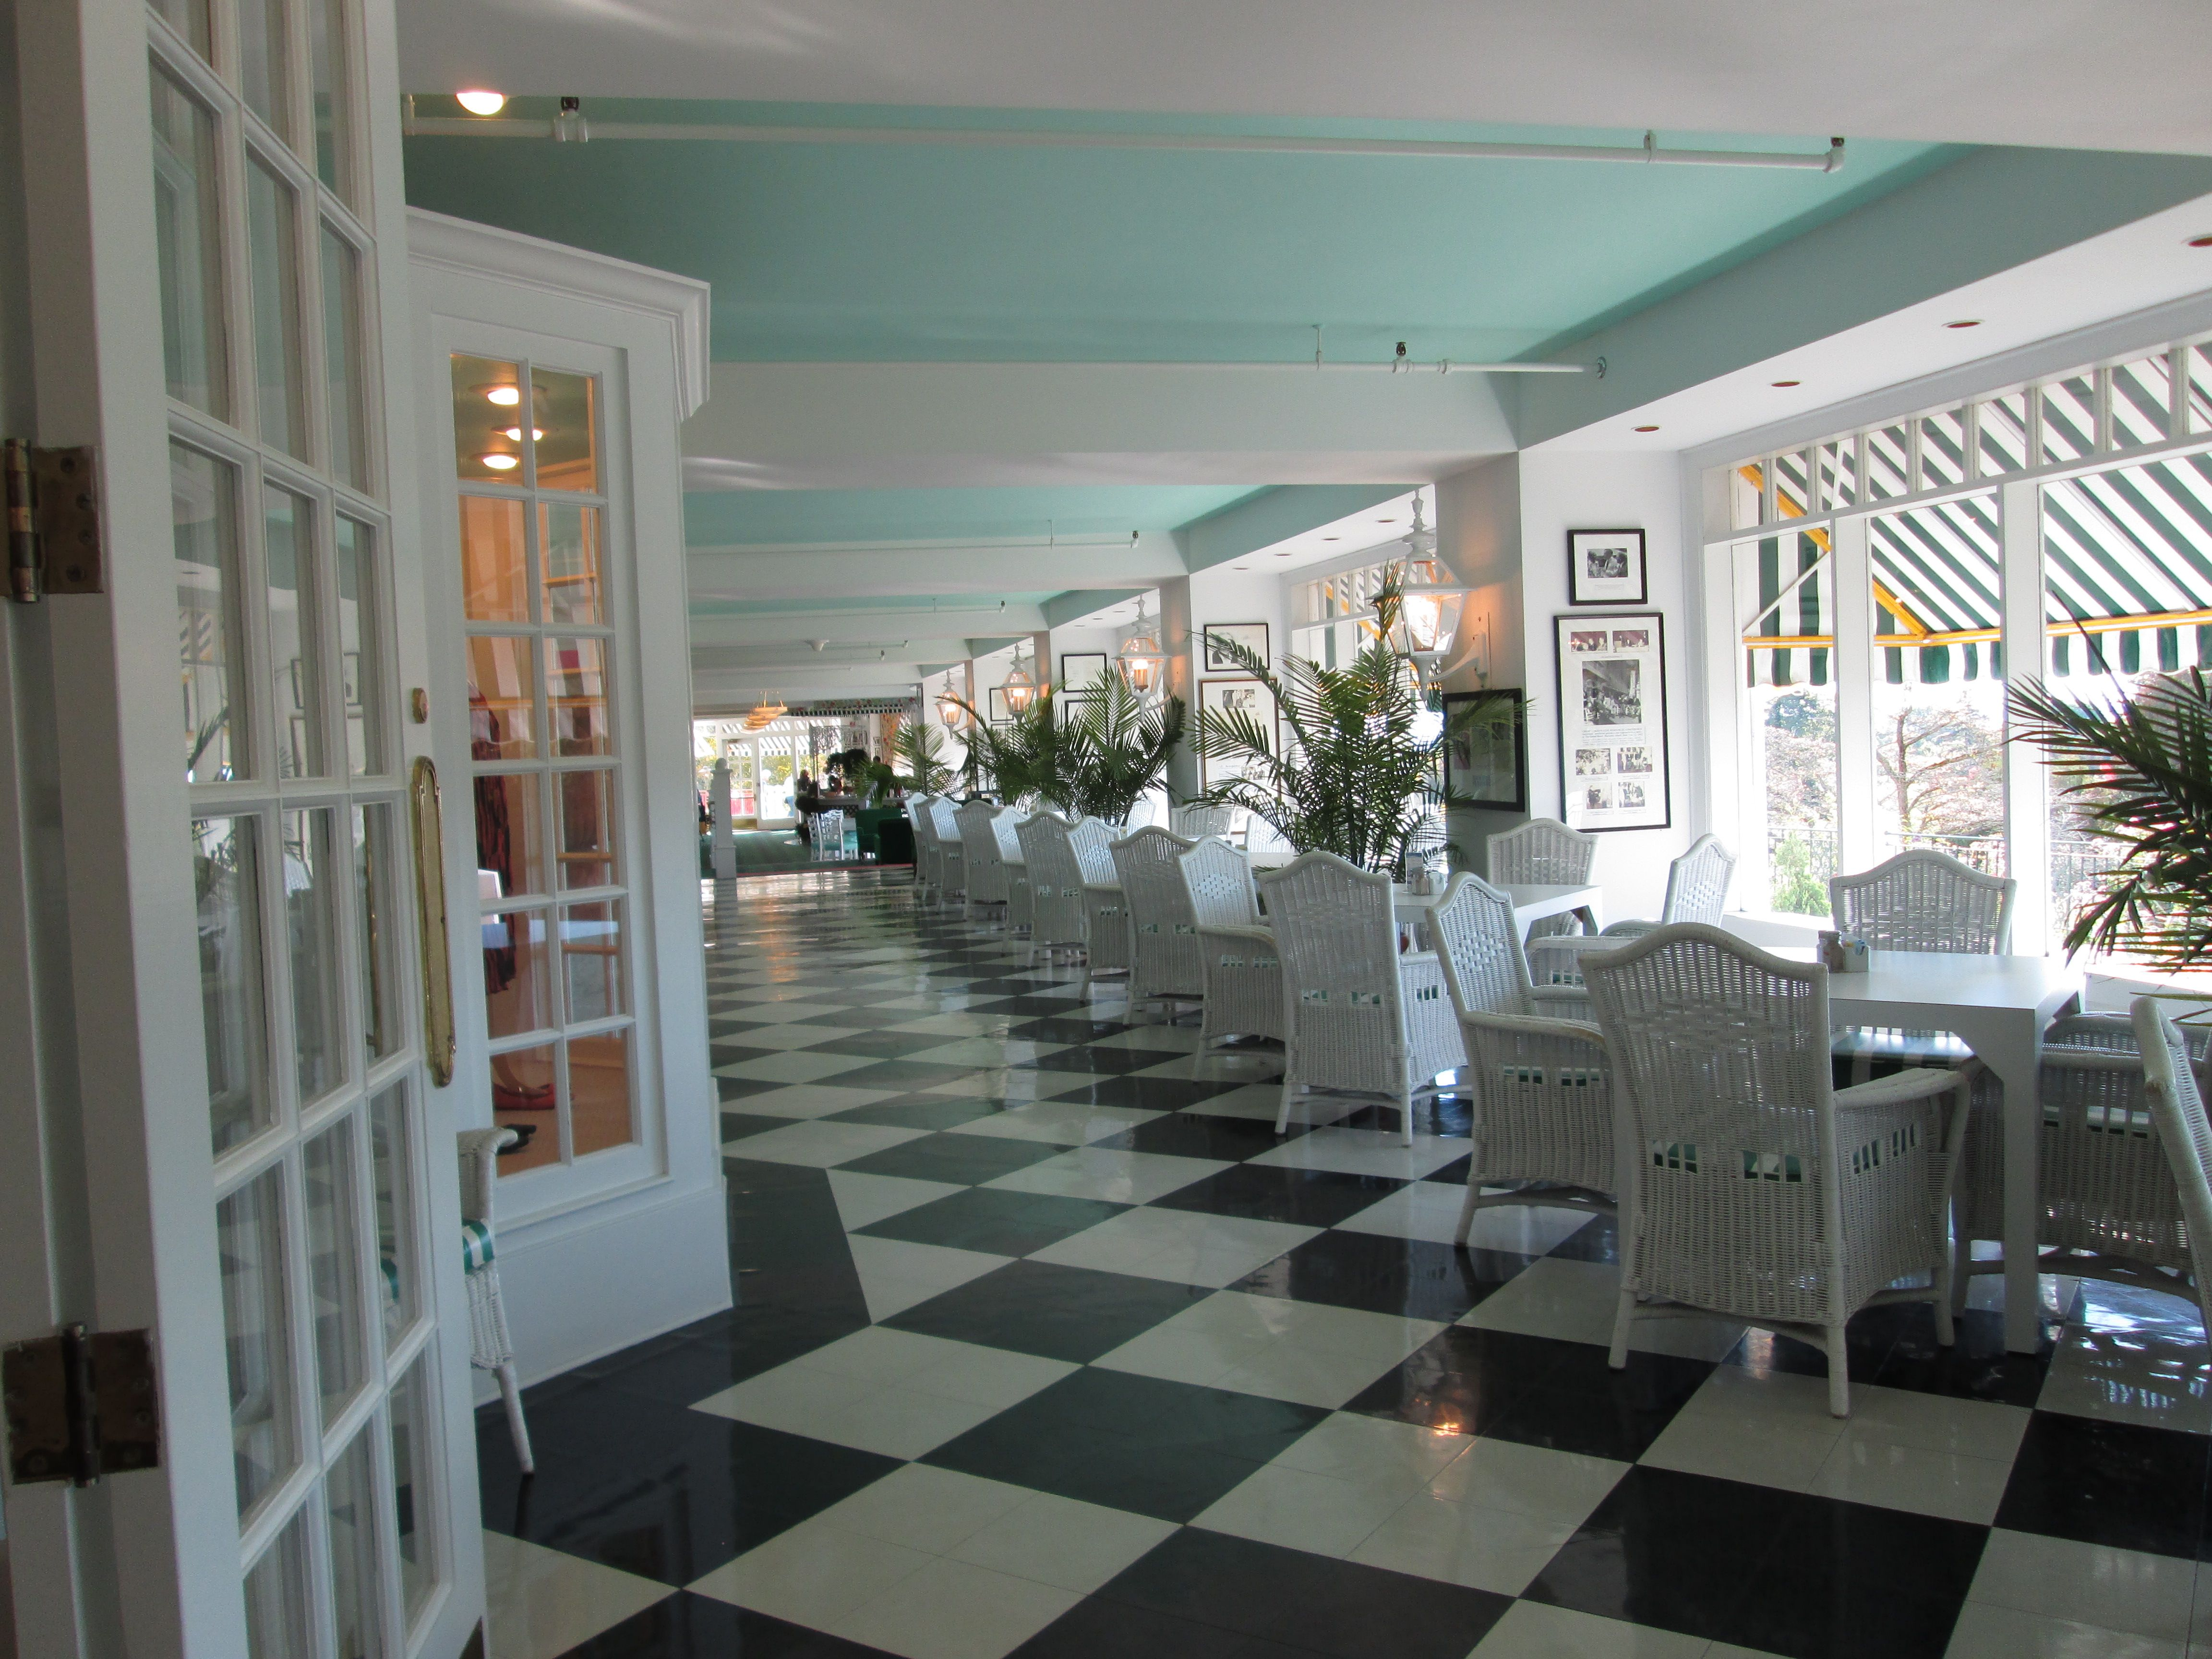 Interior of the Grand Hotel with unique shops